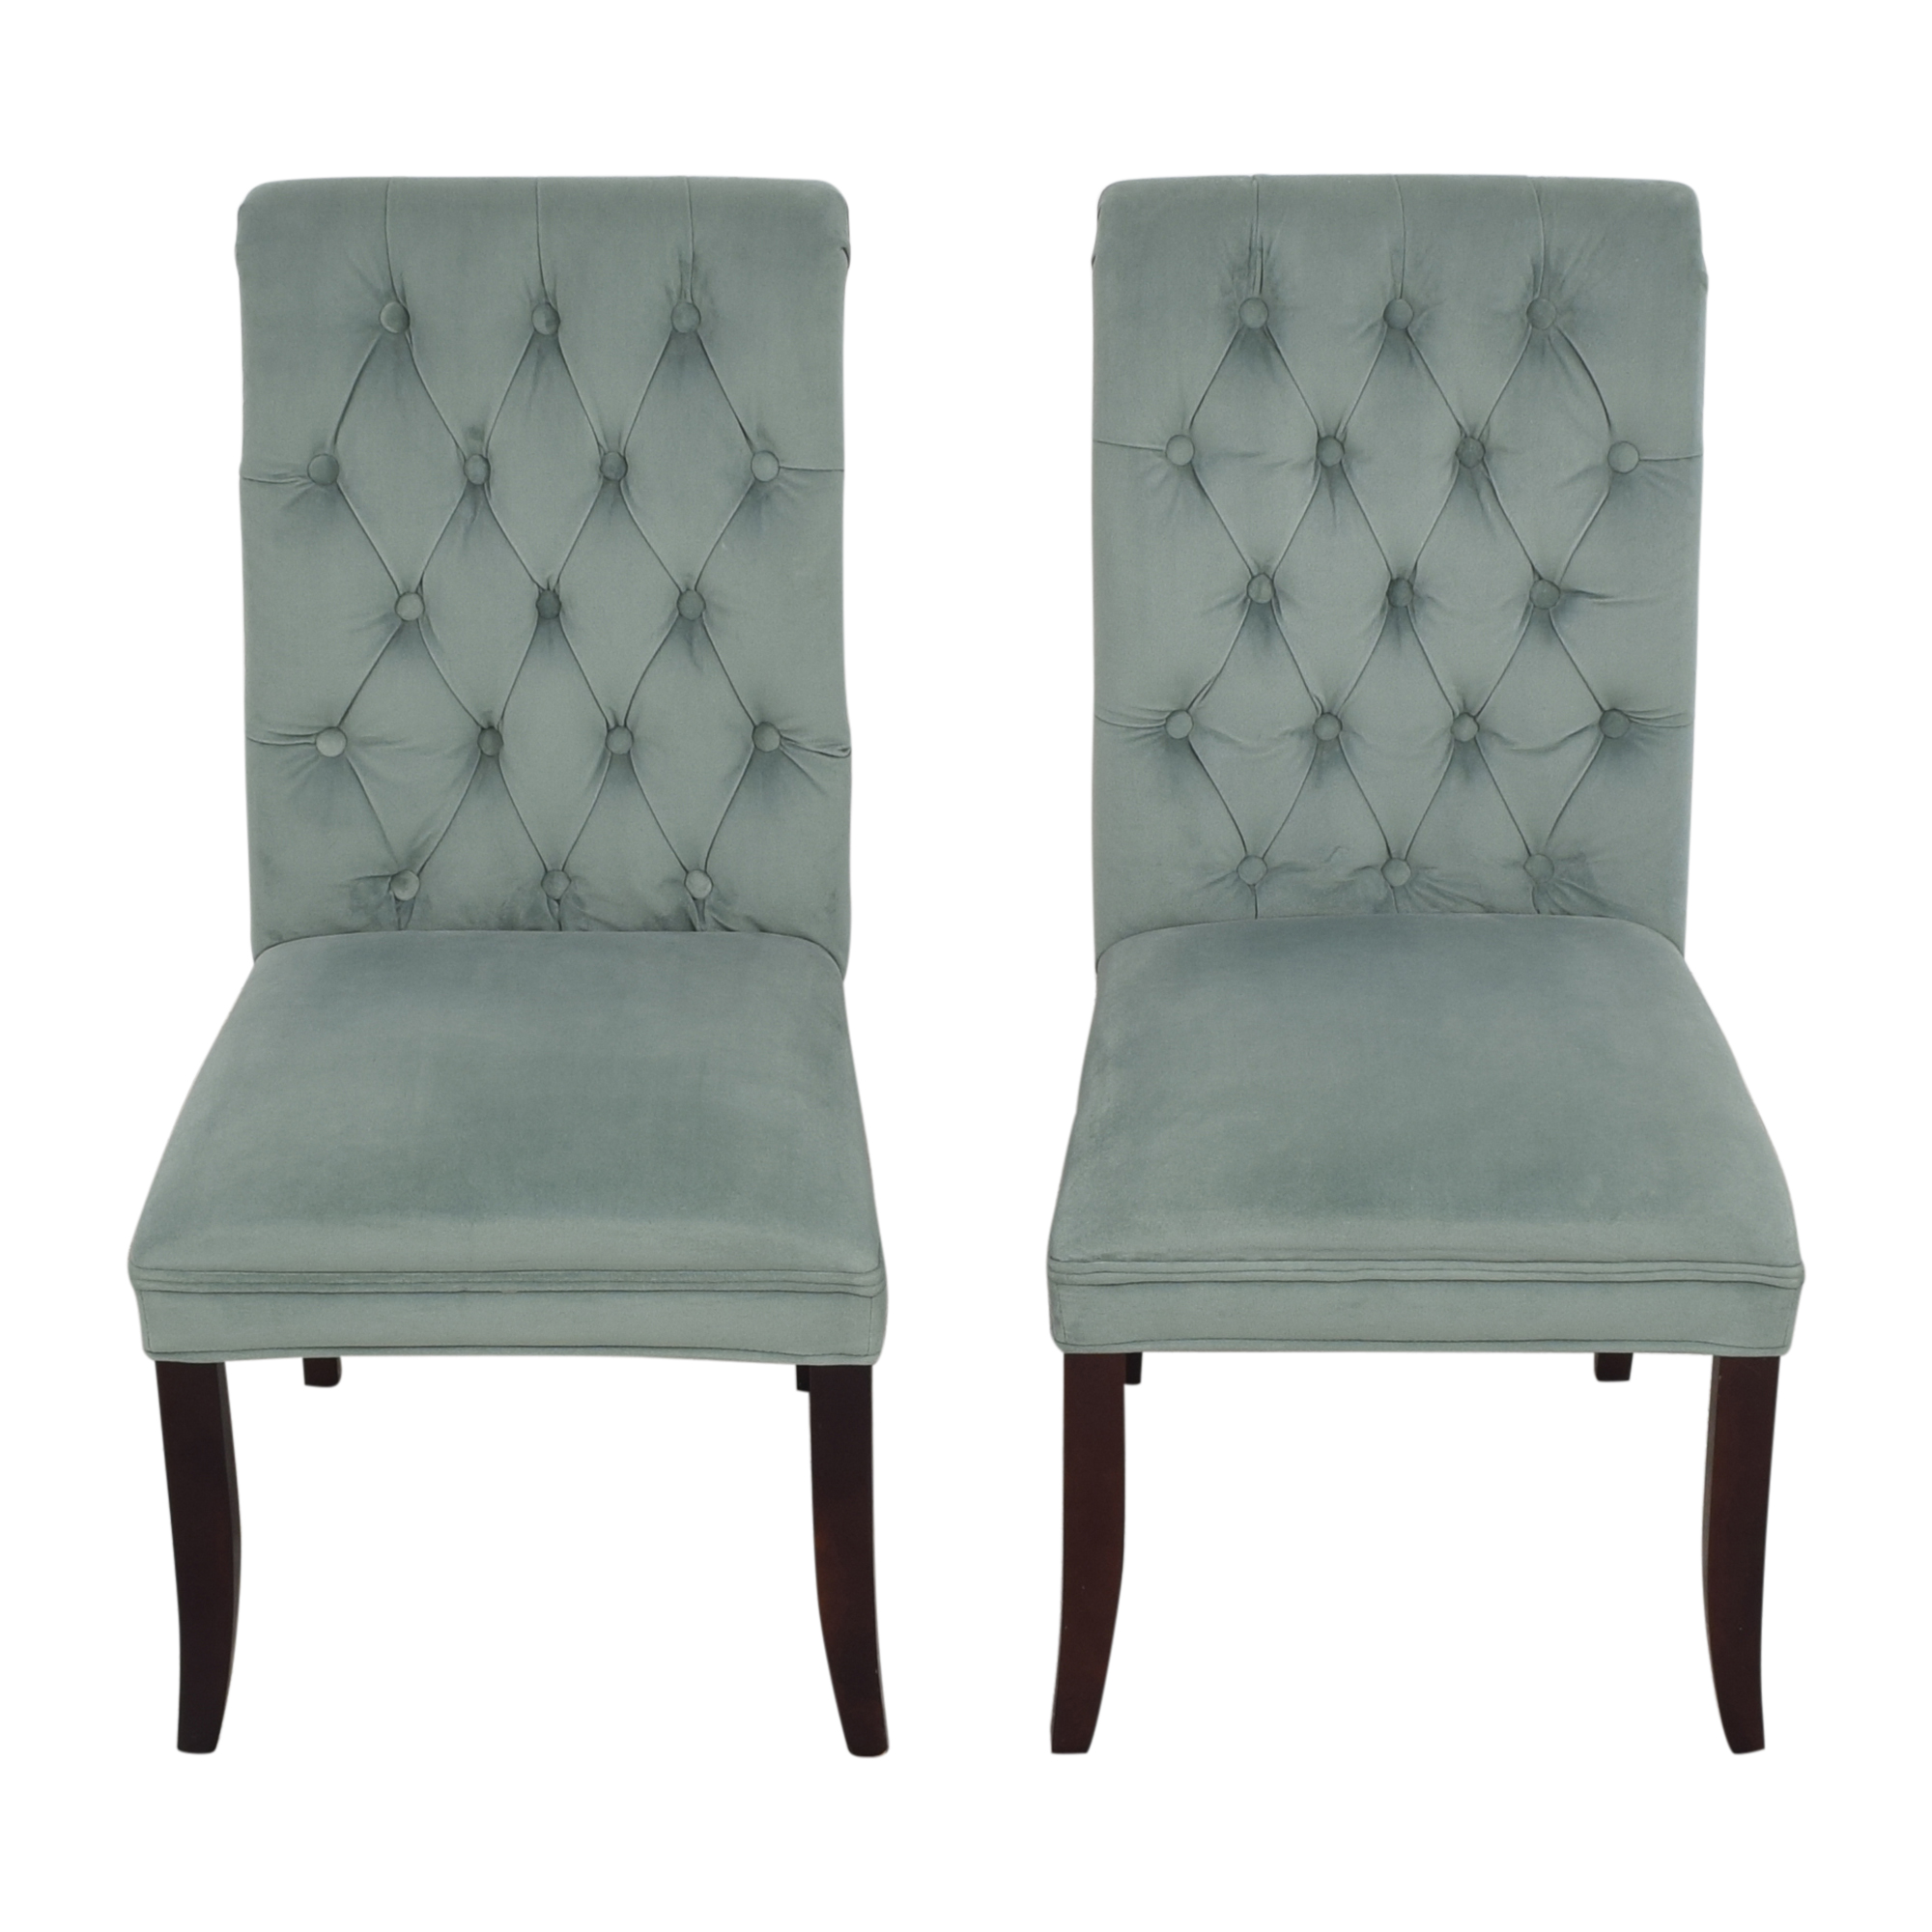 Pier 1 Pier 1 Audrey Dining Chairs coupon